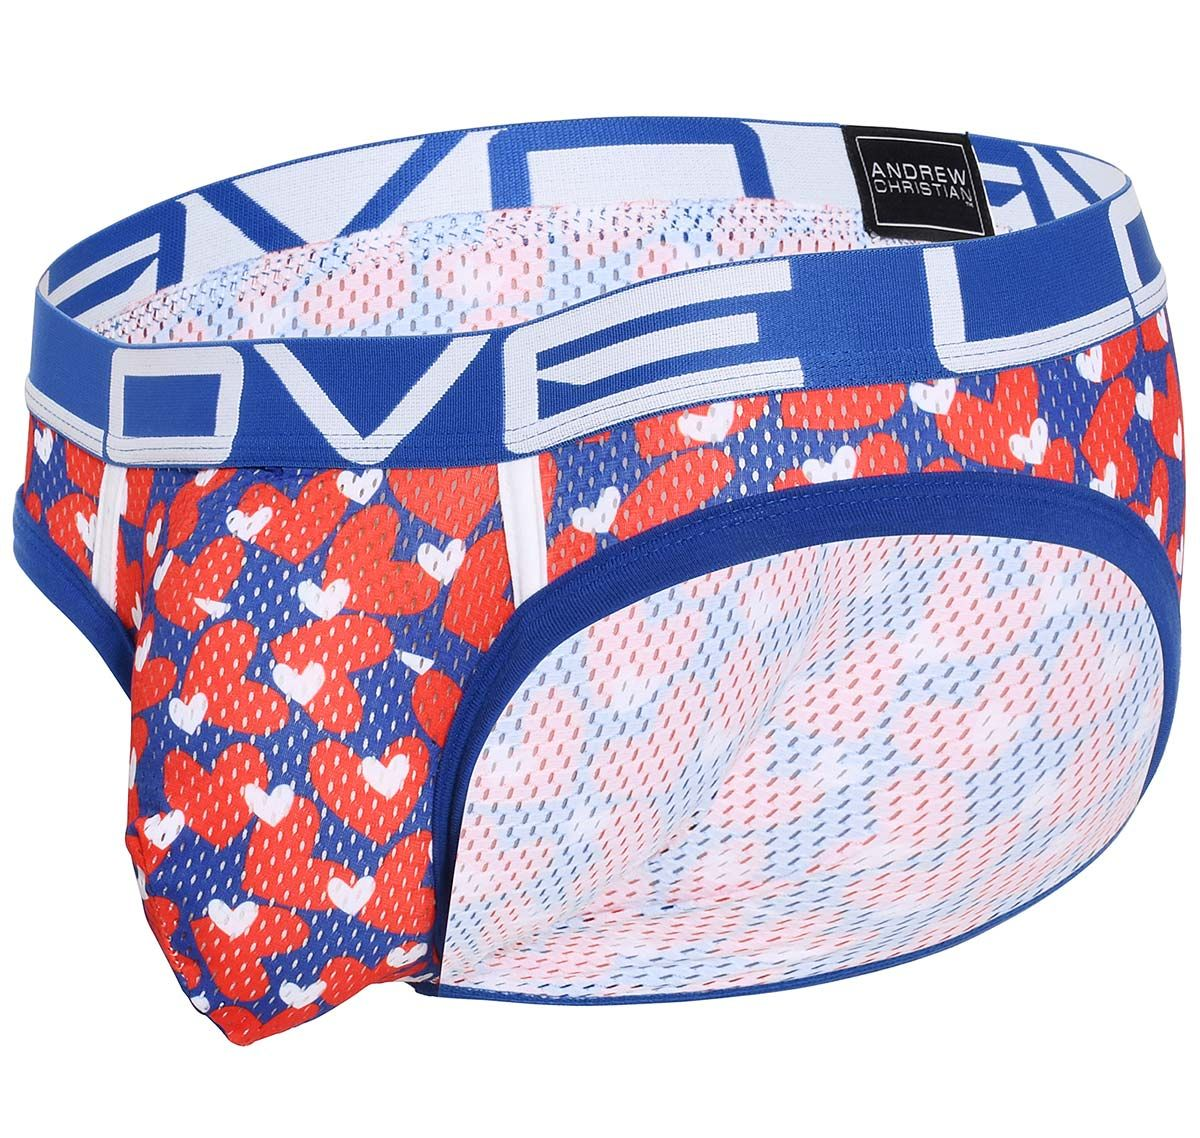 Andrew Christian Herrenslip LOVE SWEETHEART MESH BRIEF with ALMOST NAKED 91541, mehrfarbig